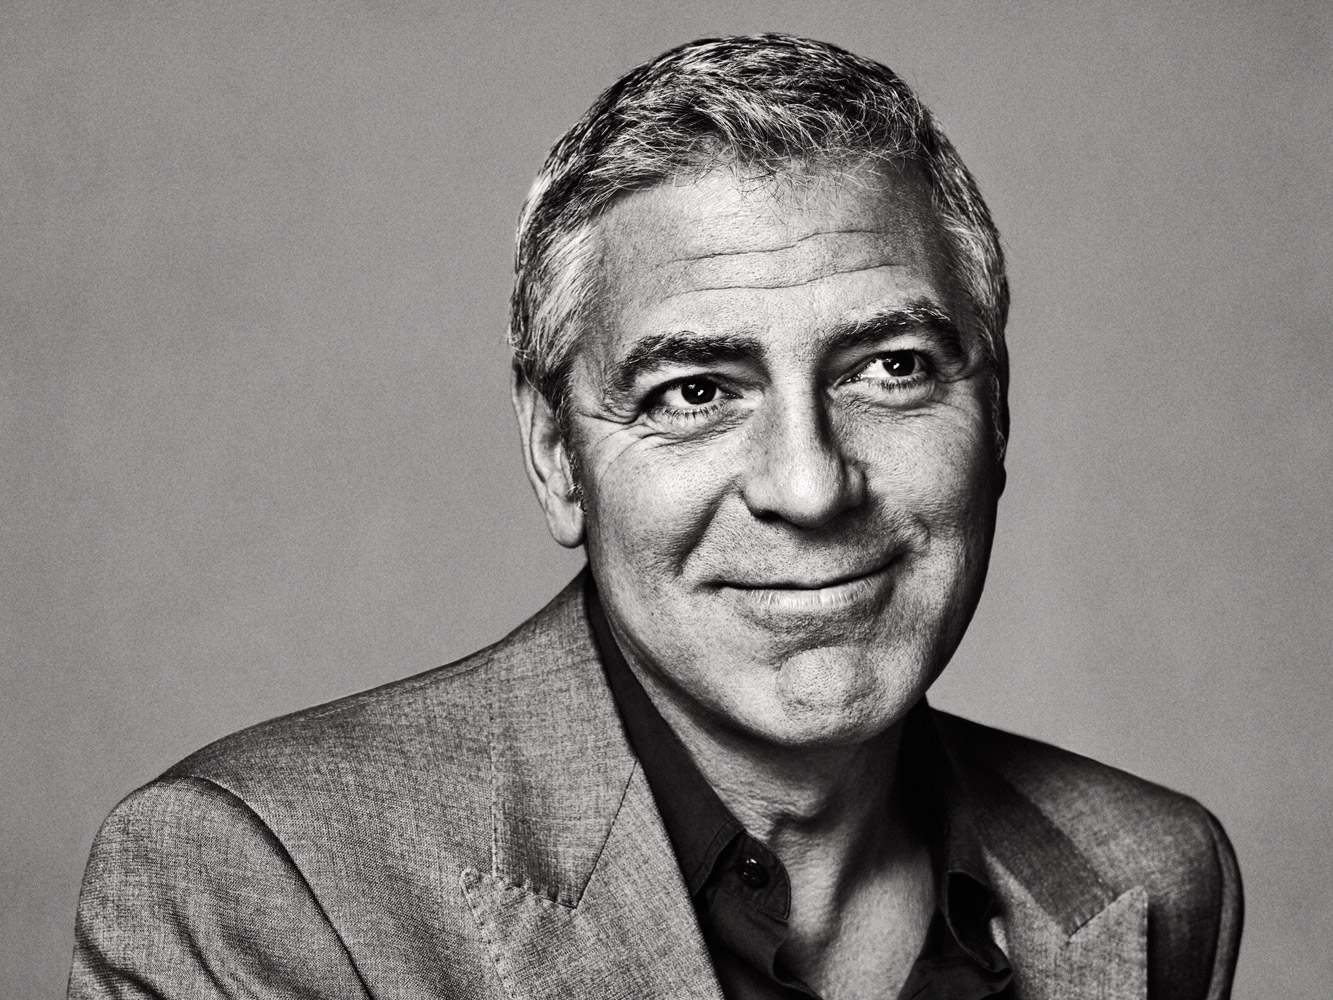 George Clooney2011 Performances: The Descendants and The Ides of MarchNominated: Best Actor for The Descendants